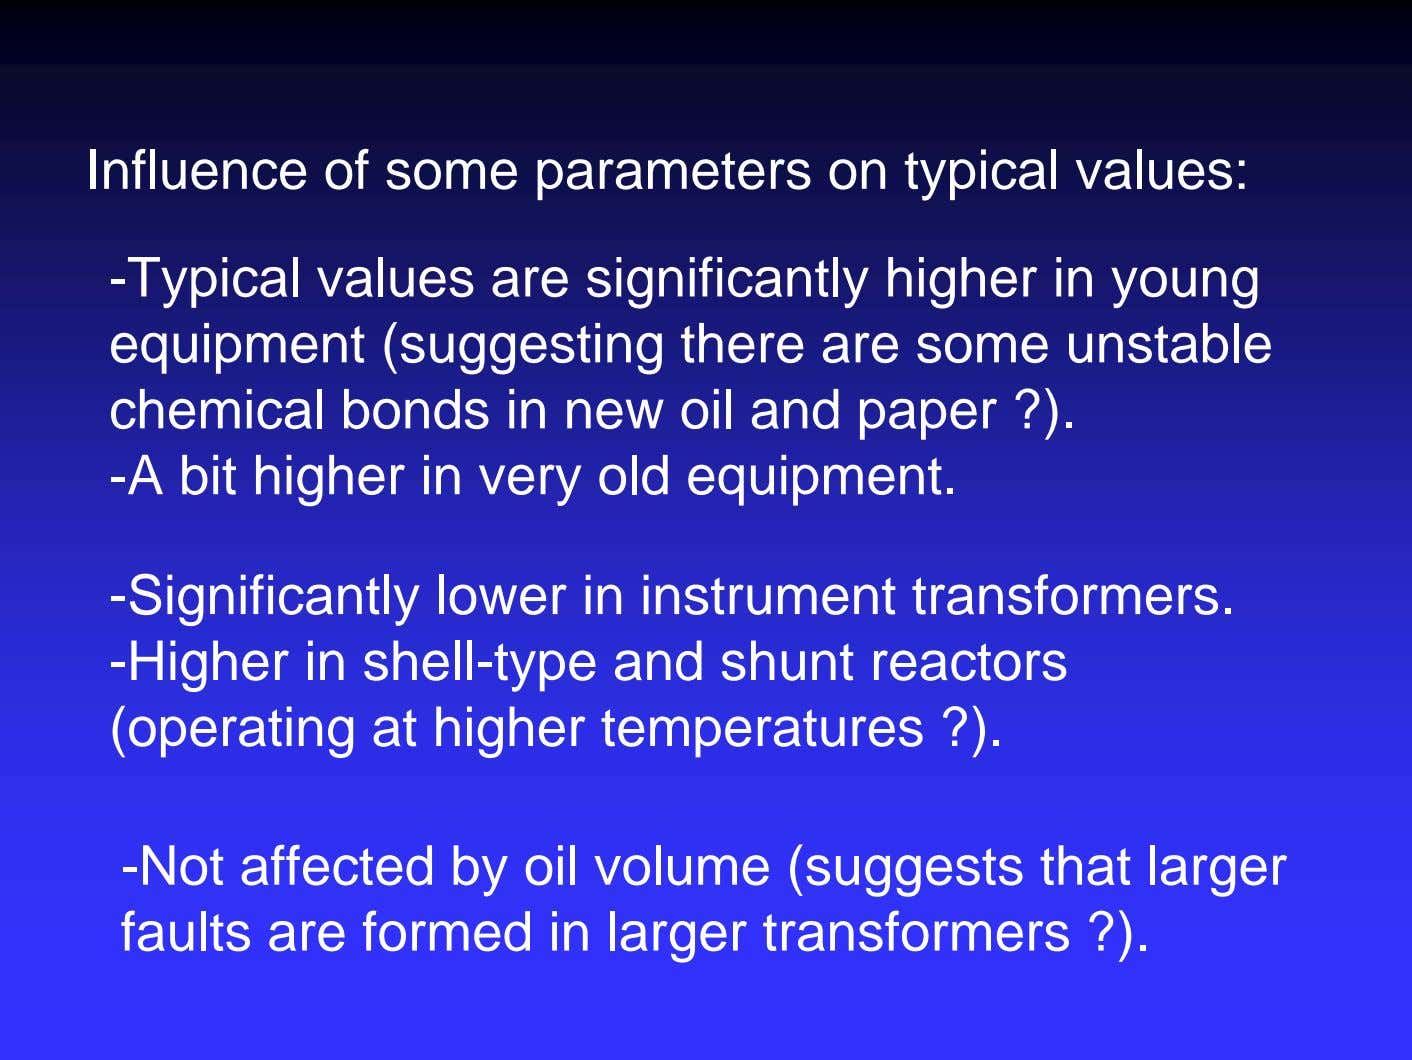 Influence of some parameters on typical values: -Typical values are significantly higher in young equipment